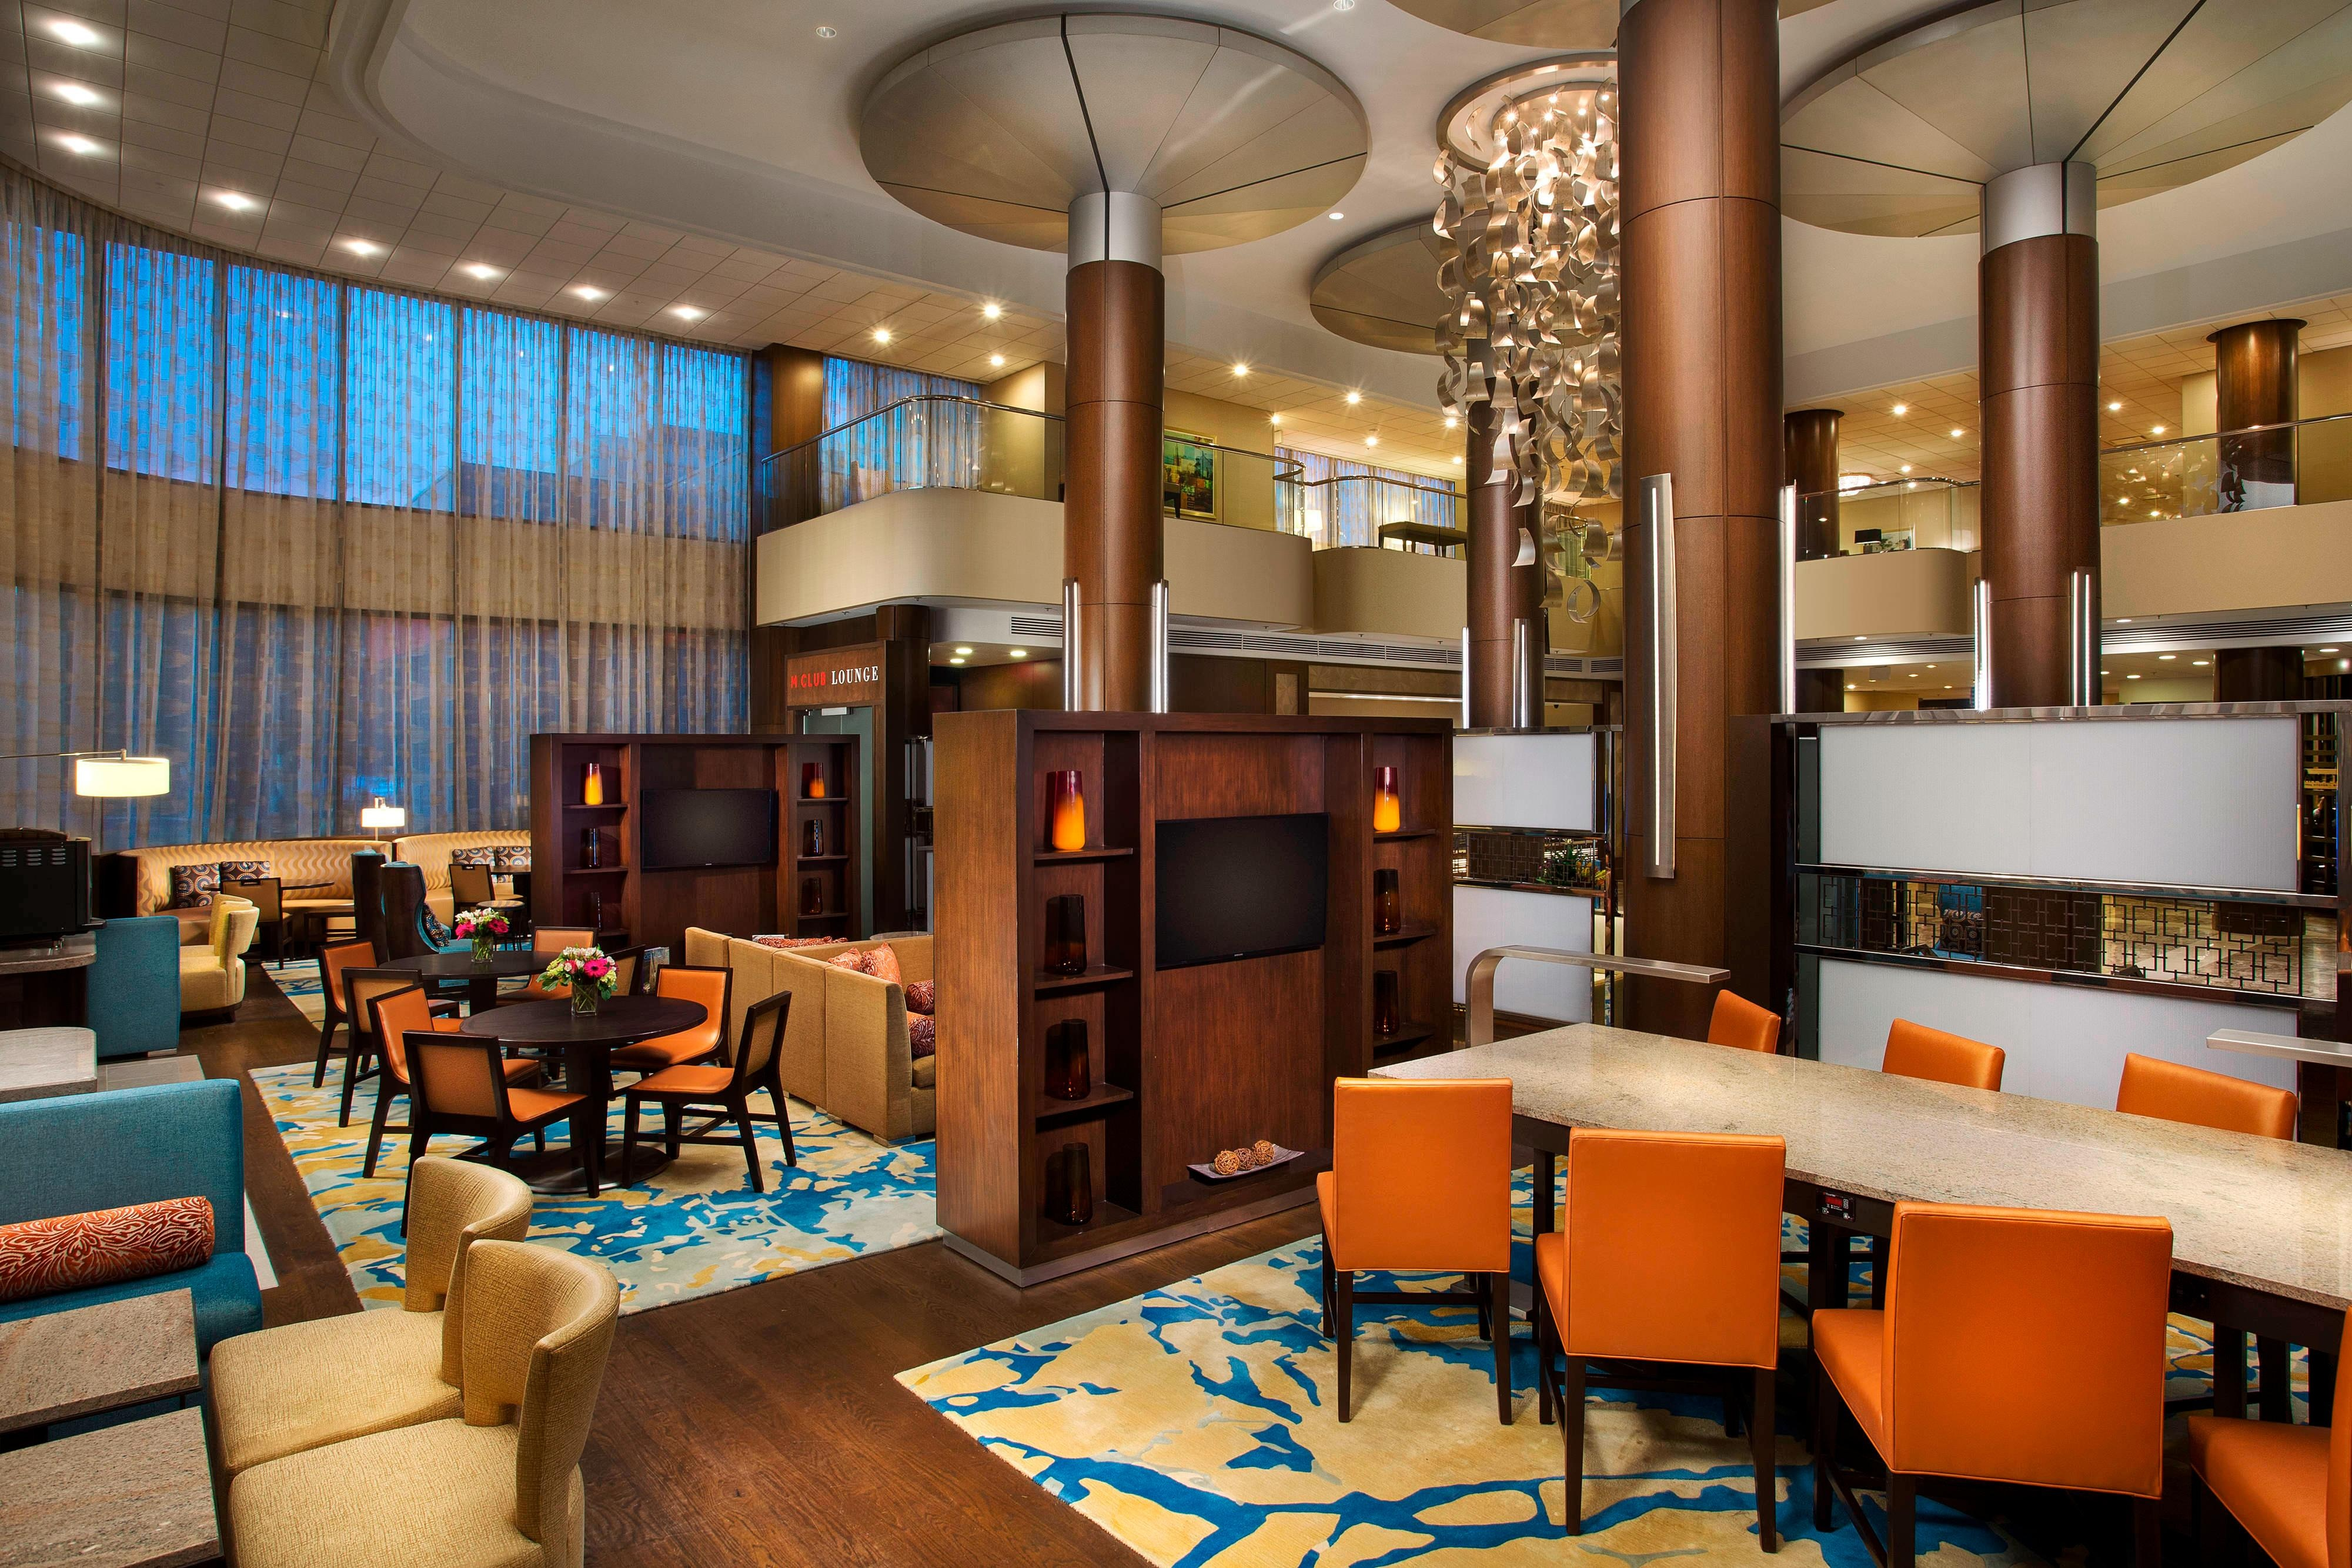 M Club Lounge - Multi-Function Seating Area